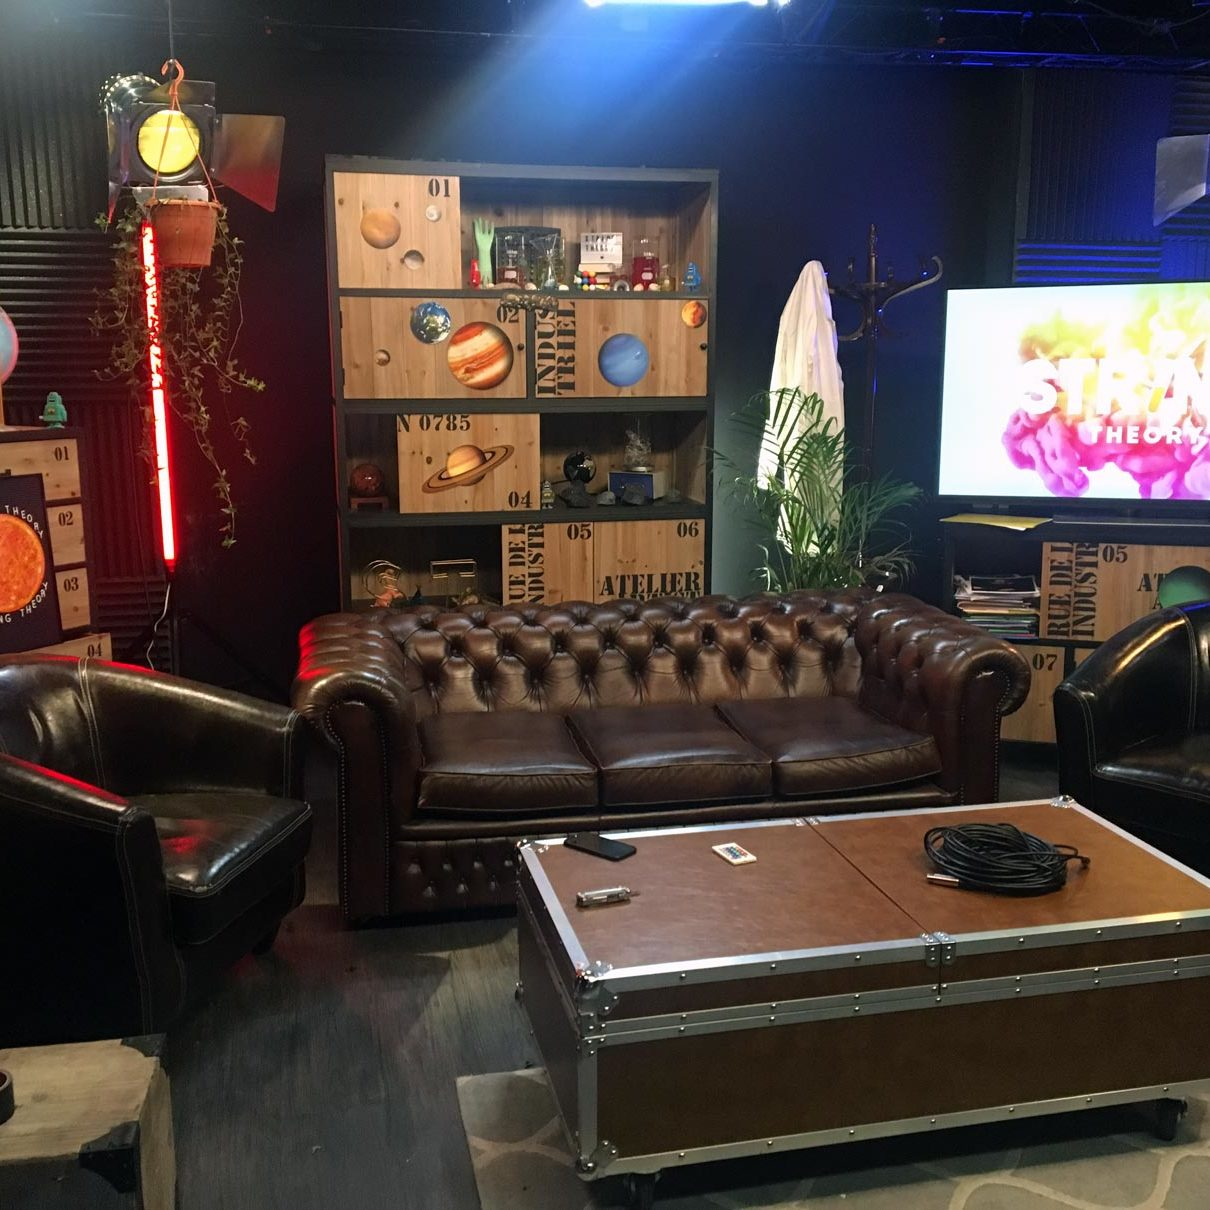 YouTube live - video live streaming production studio in Paris - Videology